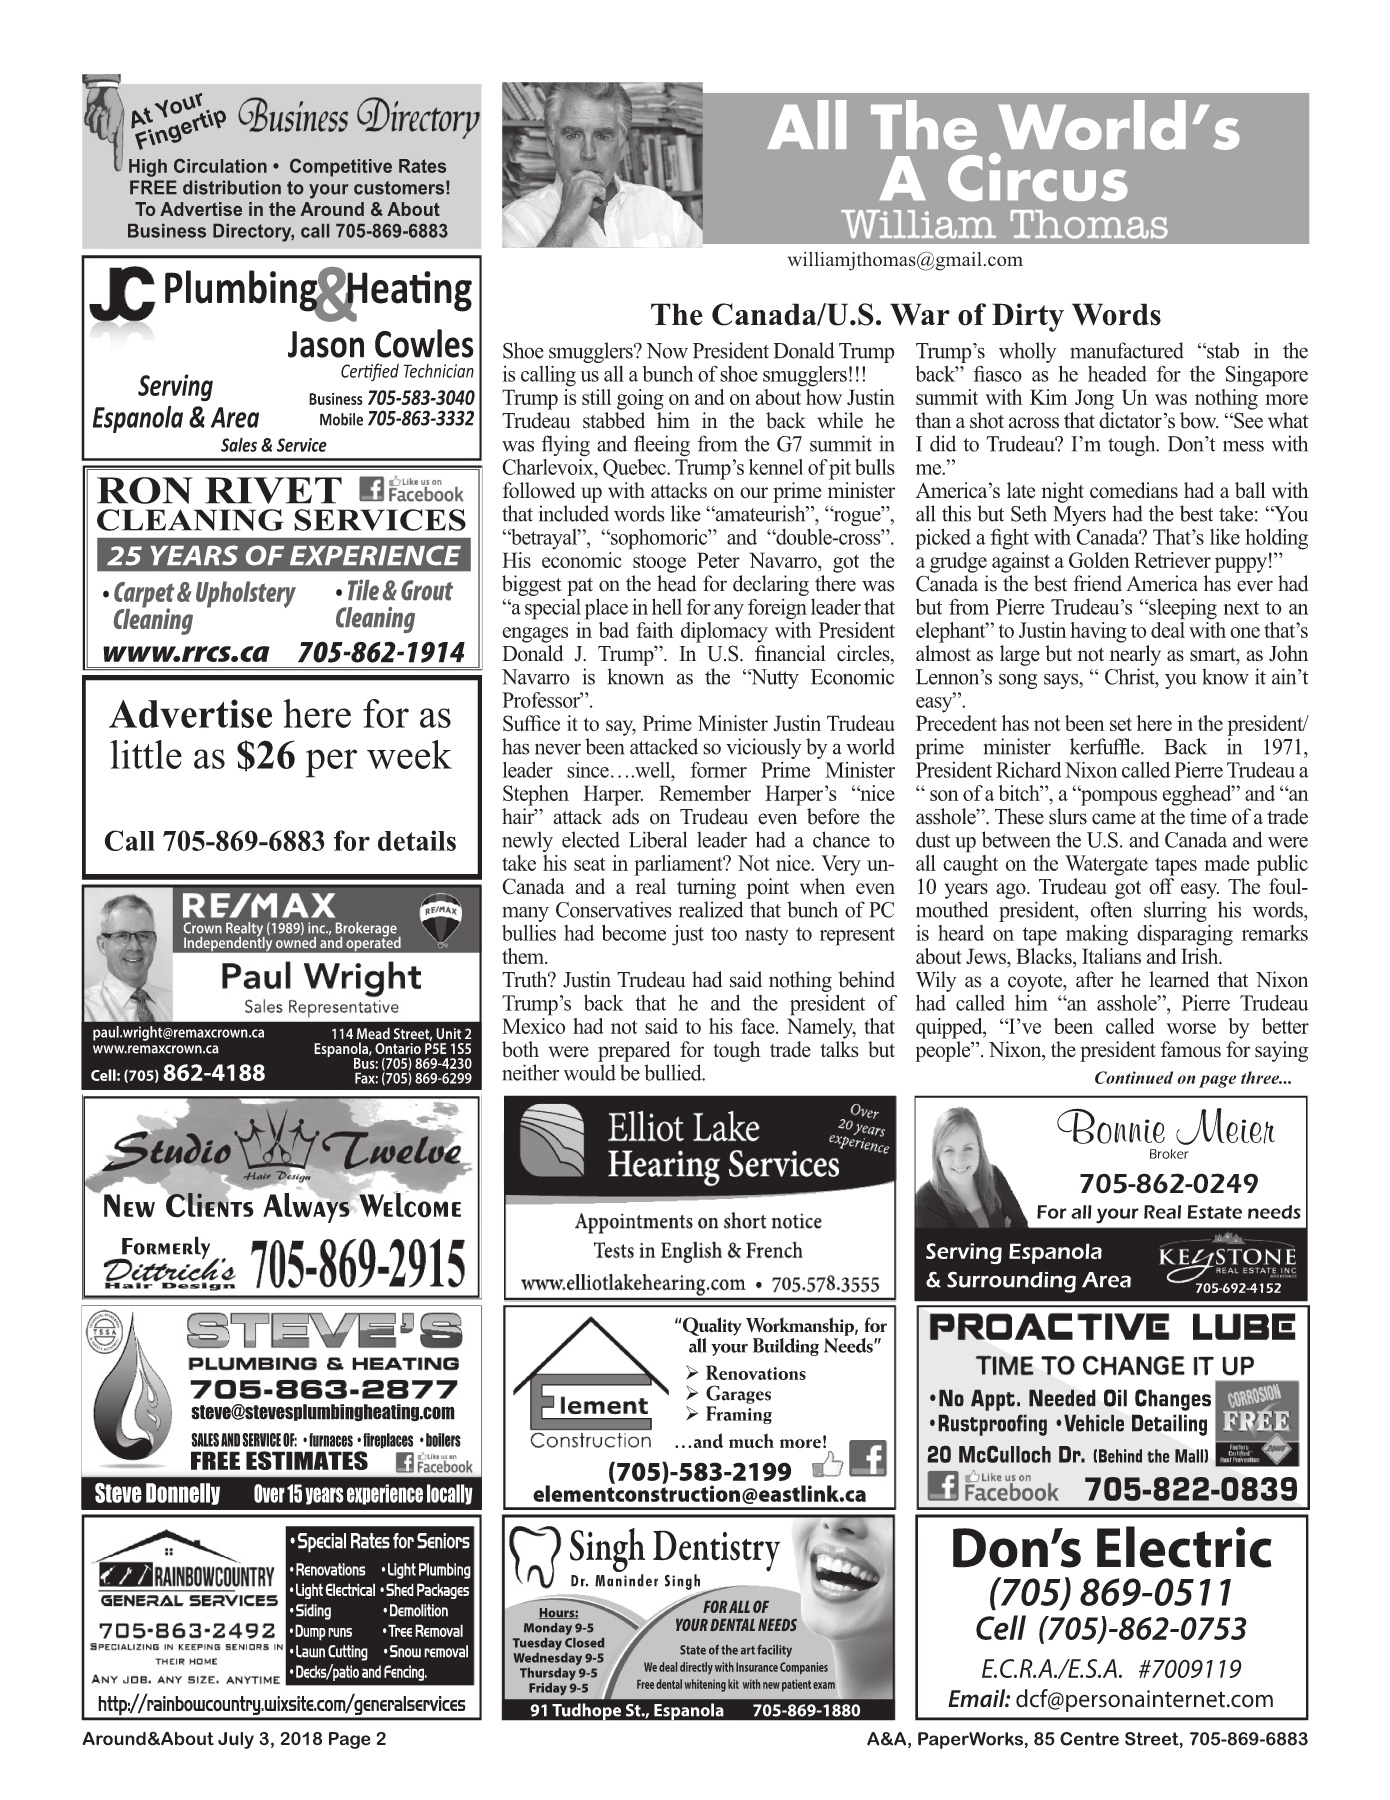 Around & About July 3, 2018 Issue 27, Vol 22 Pages 1 - 8 - Text